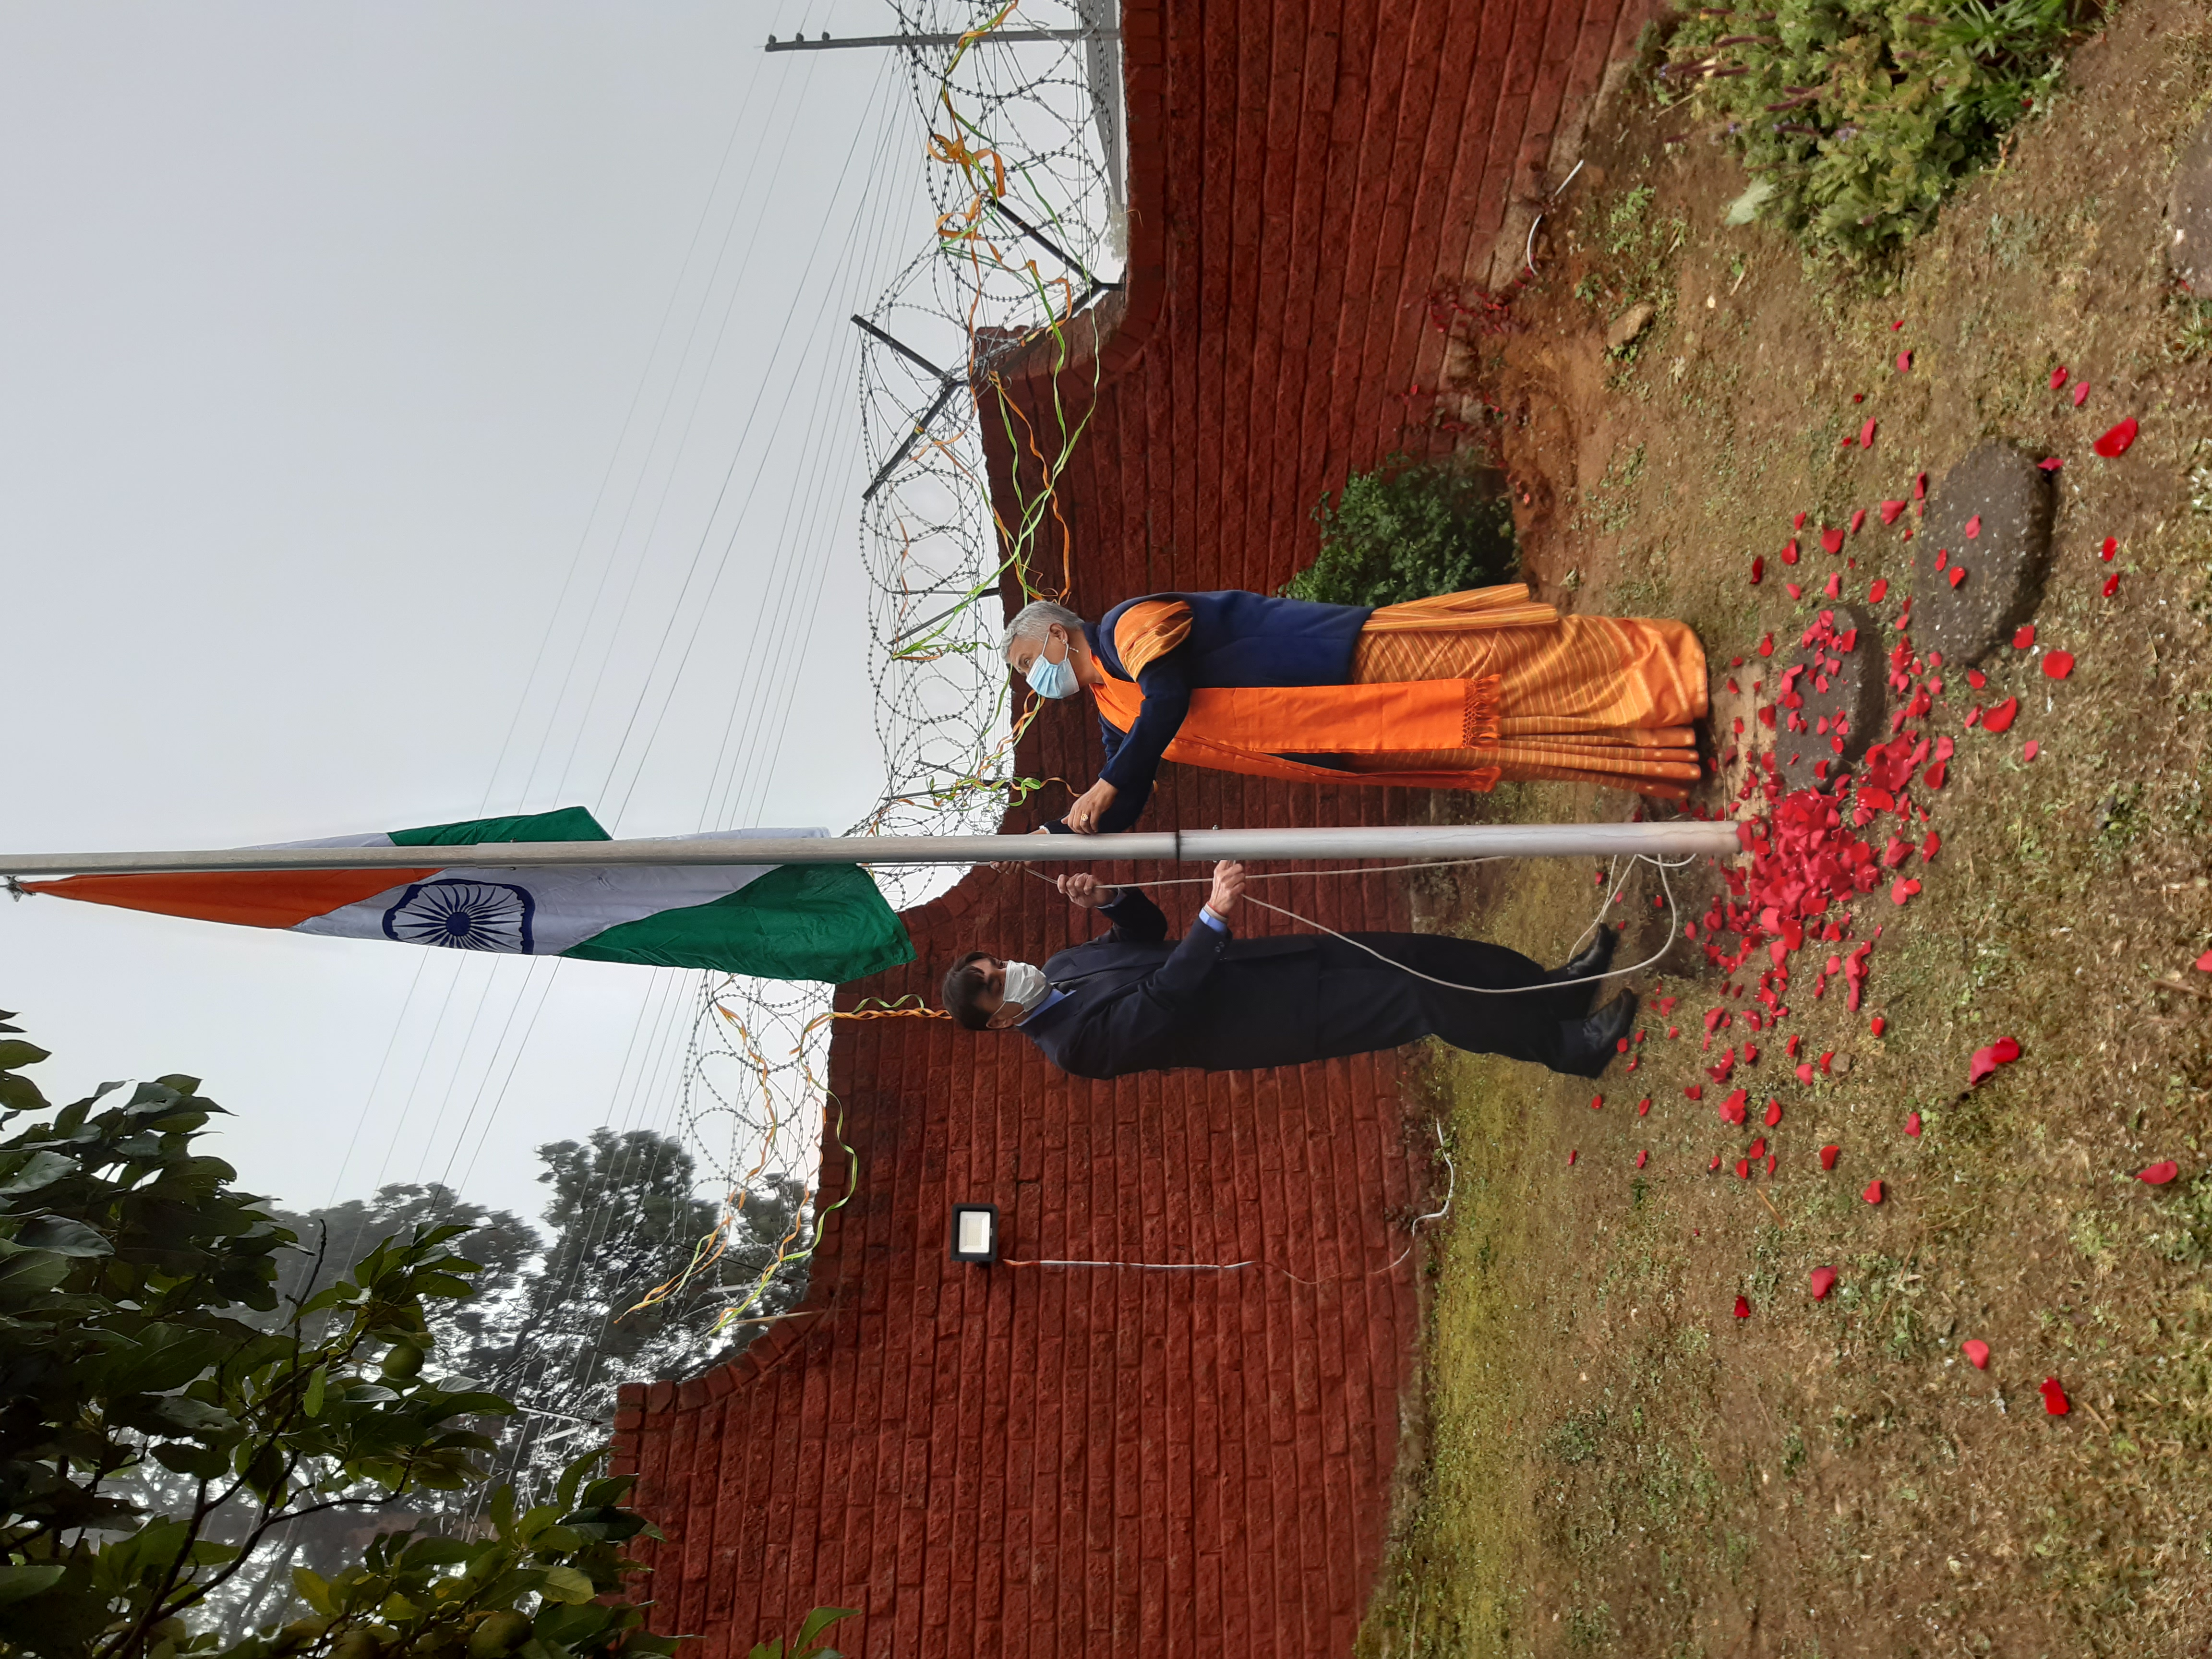 The High Commissioner of India Radha Venkataraman hoisting the Indian Flag on the Independence day event